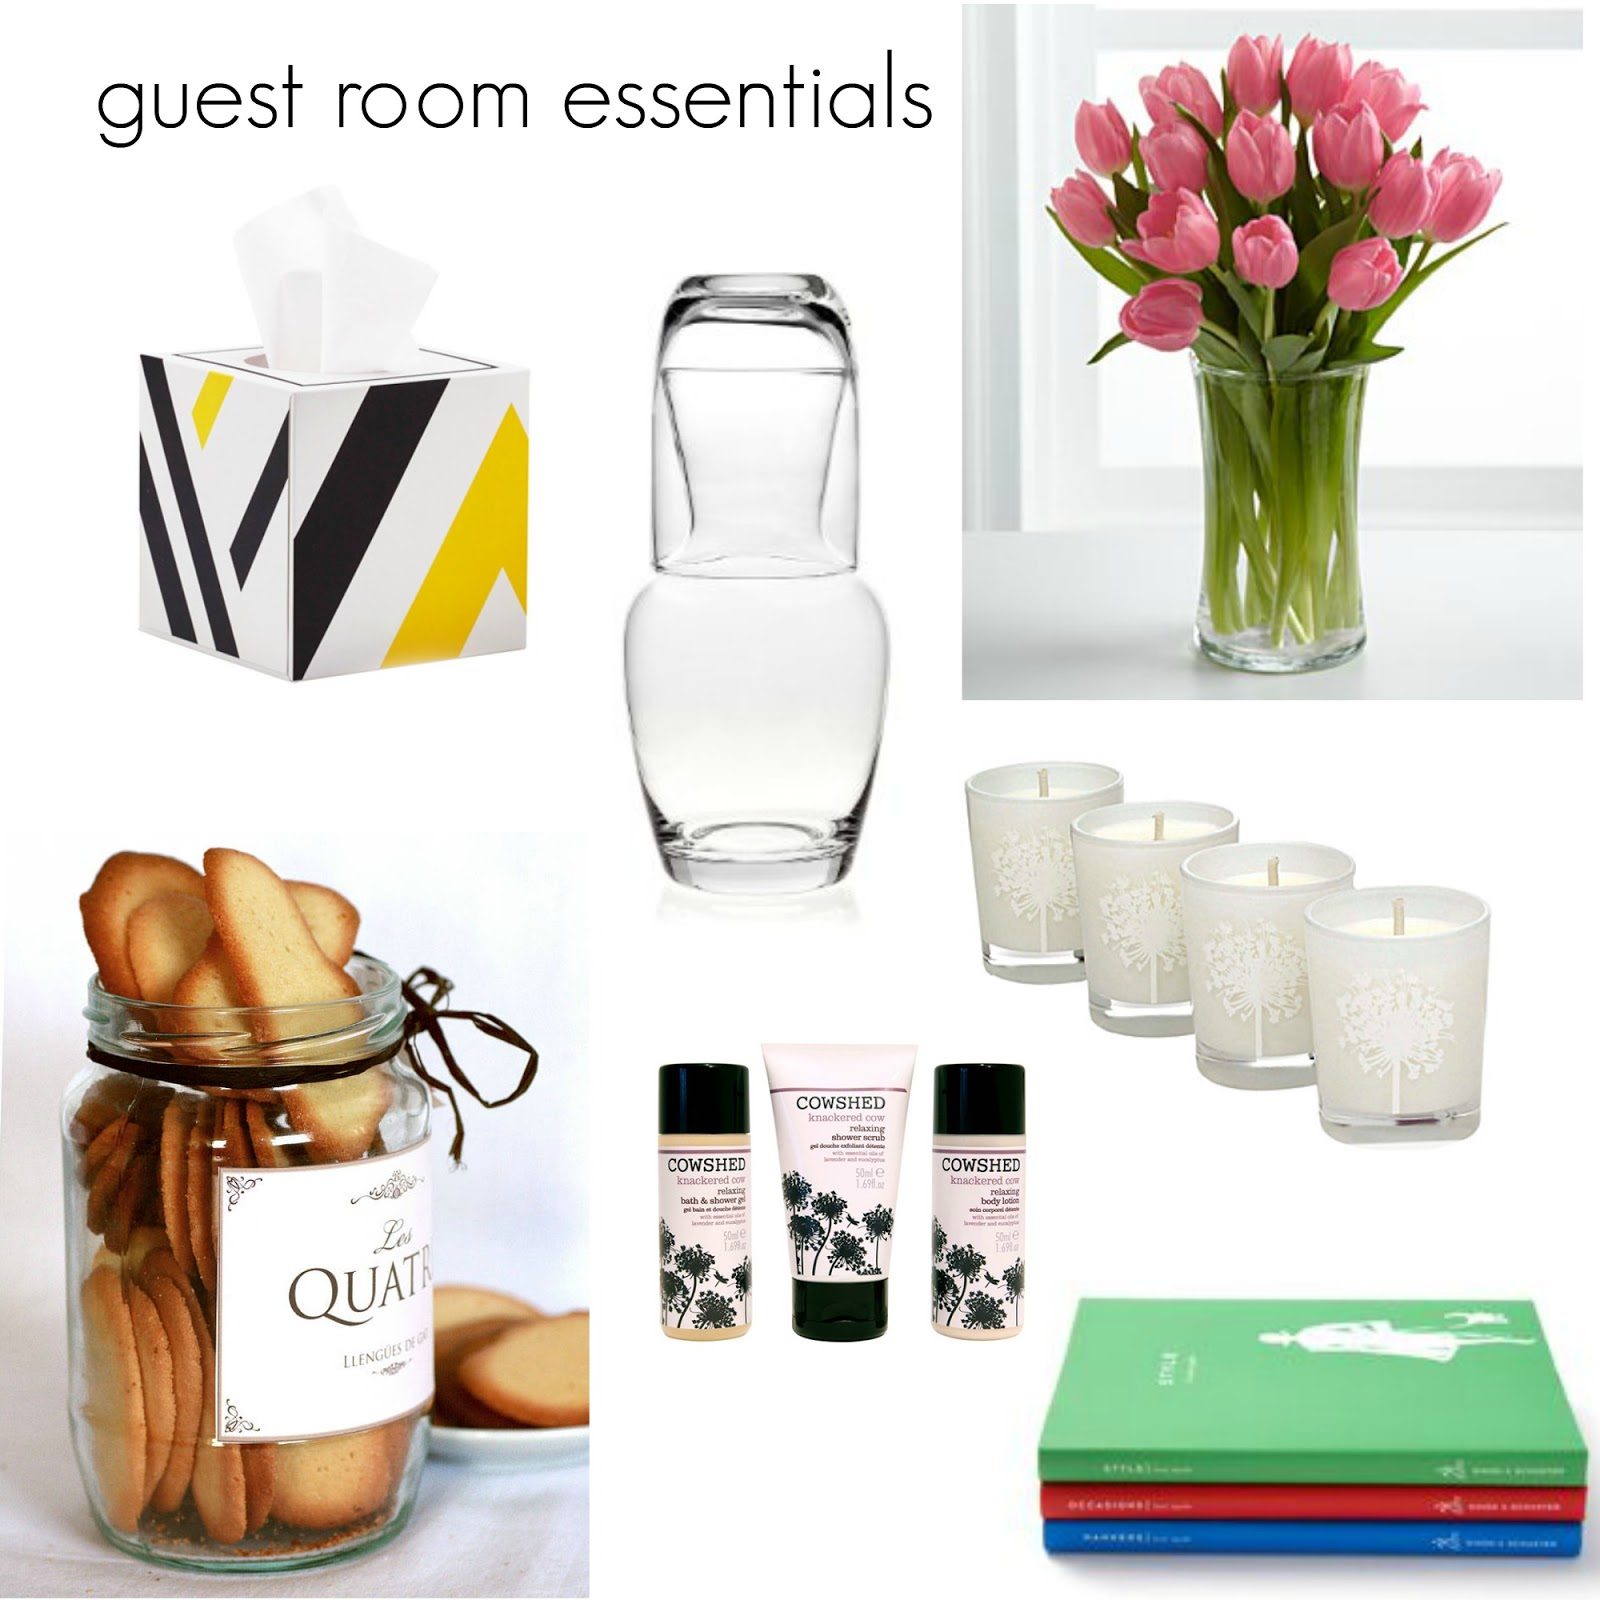 mamasvib , V. I. BEDROOM: How to create the perfect guest room - and office space